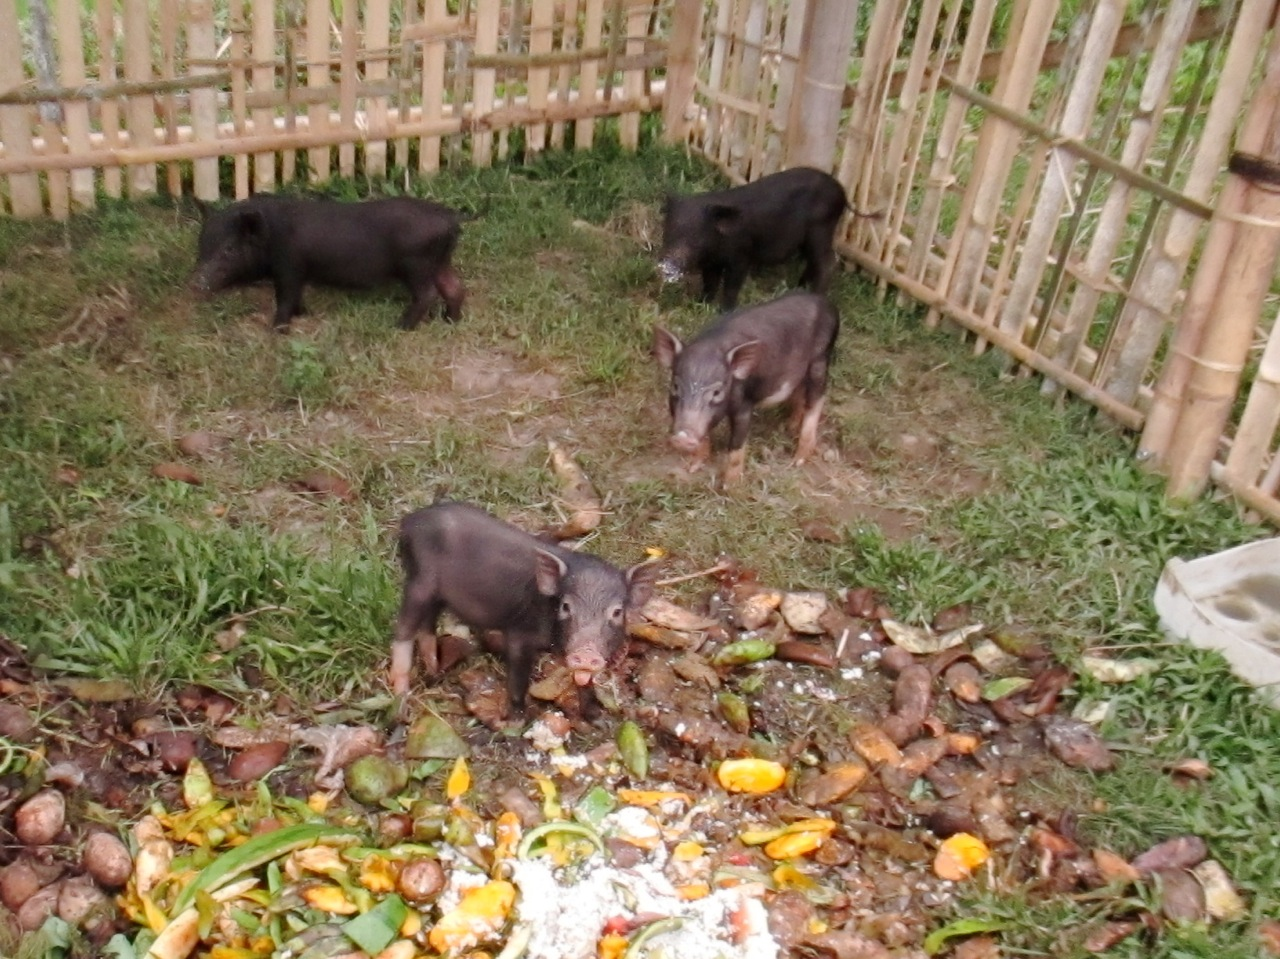 The piglets have arrived!